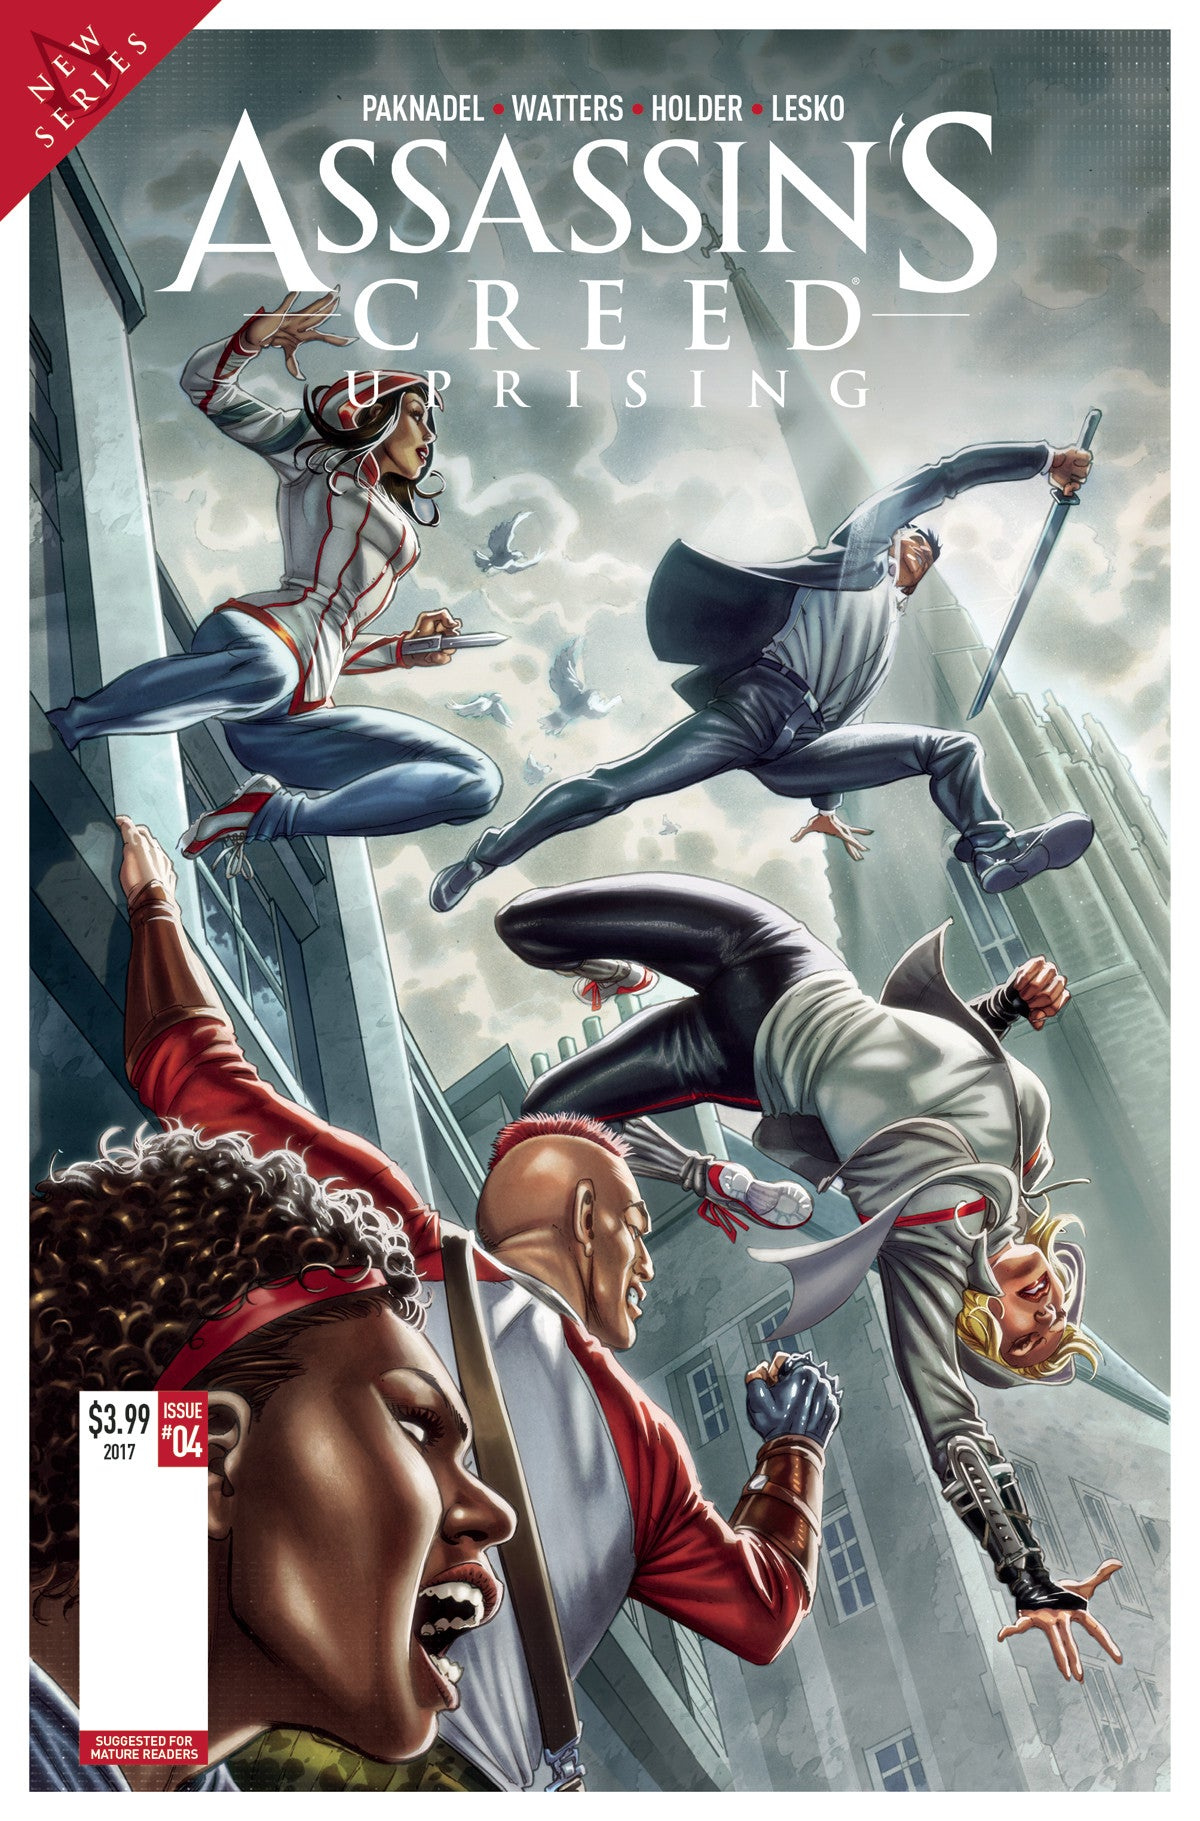 ASSASSINS CREED UPRISING #5 CVR A SANTUCCI